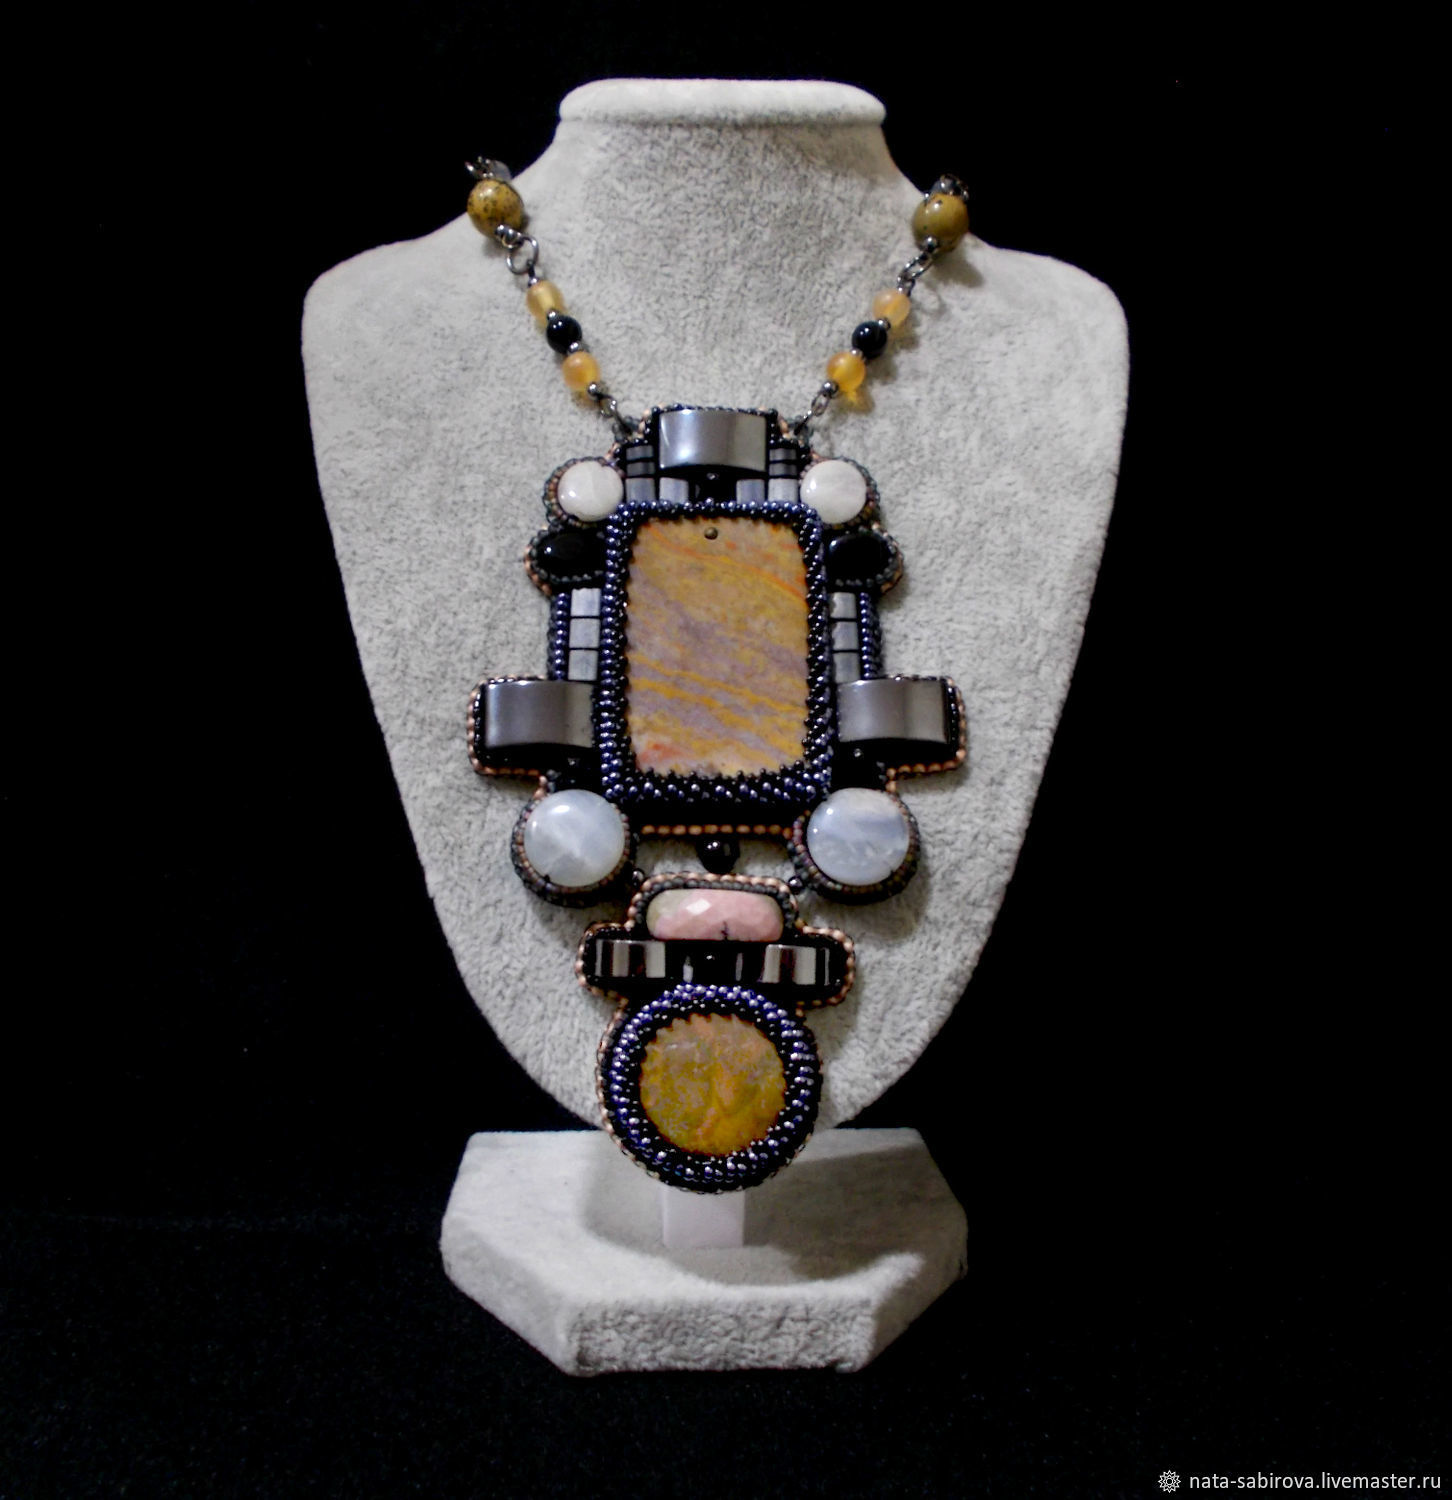 Large pendant 'Bastion' with Jasper, agate and hematite, Pendants, Mozhga,  Фото №1